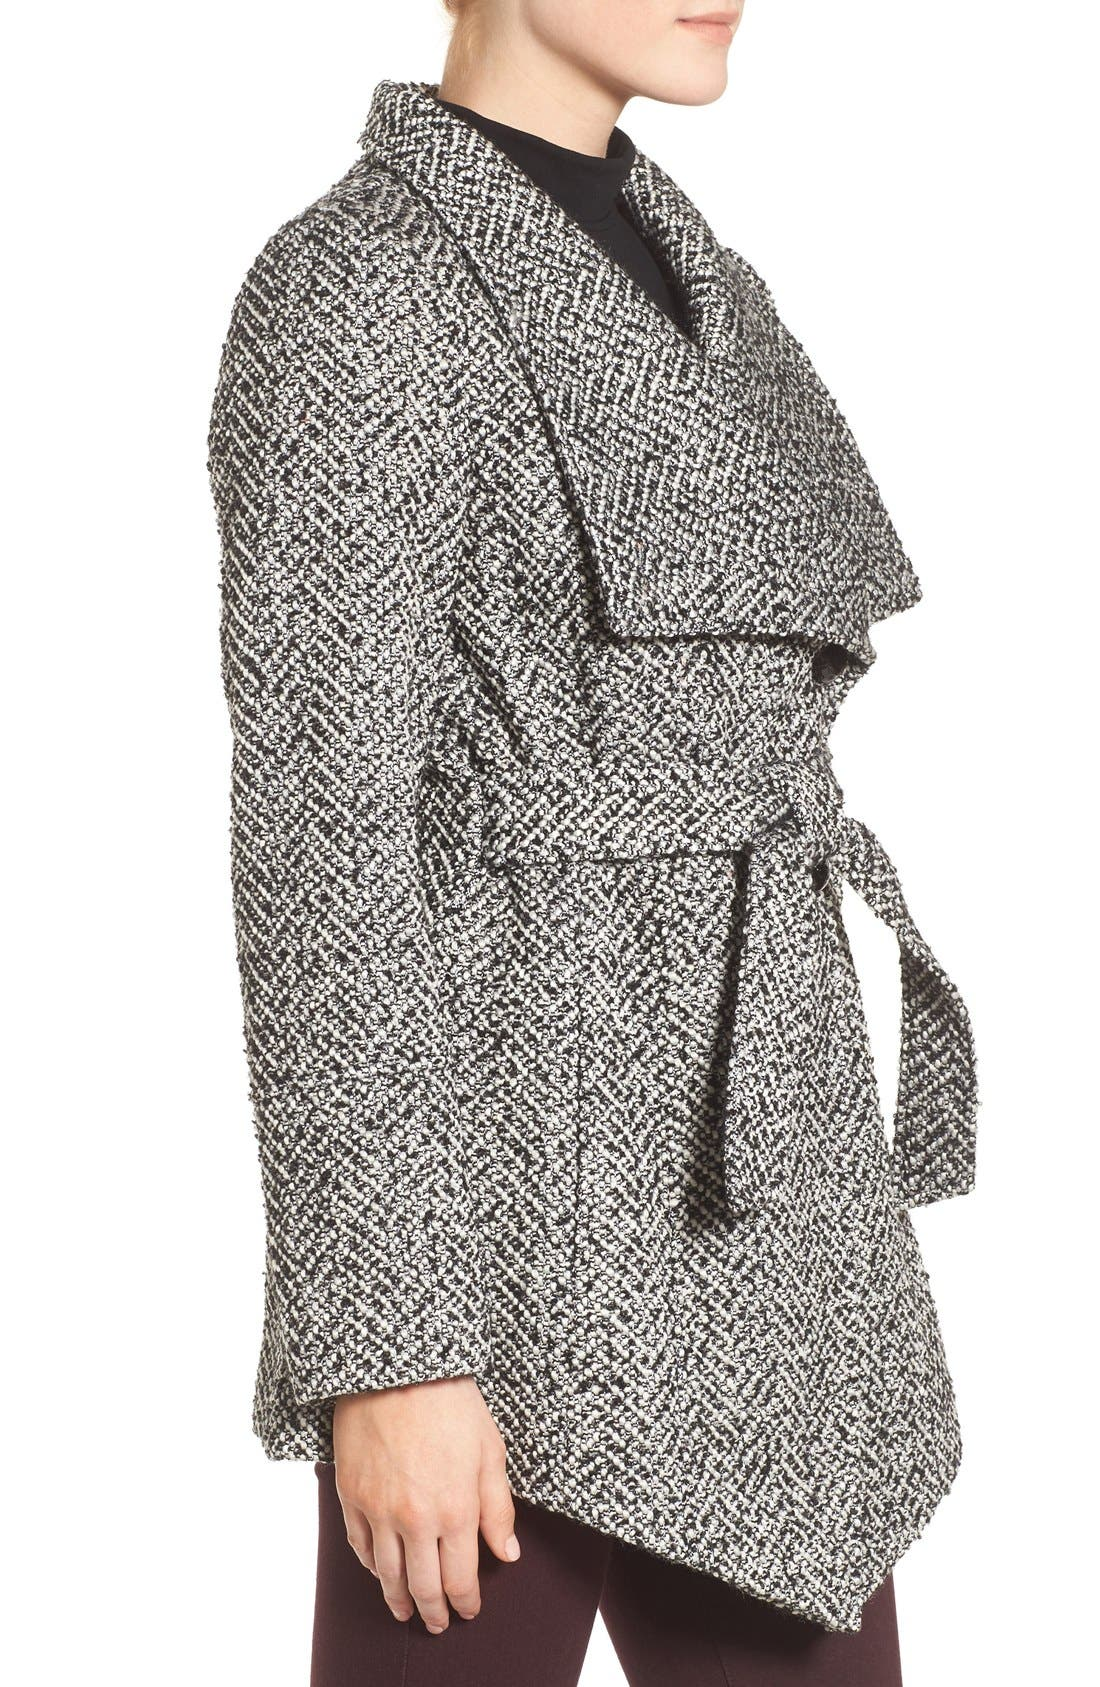 JESSICA SIMPSON,                             Belted Tweed Coat,                             Alternate thumbnail 3, color,                             003